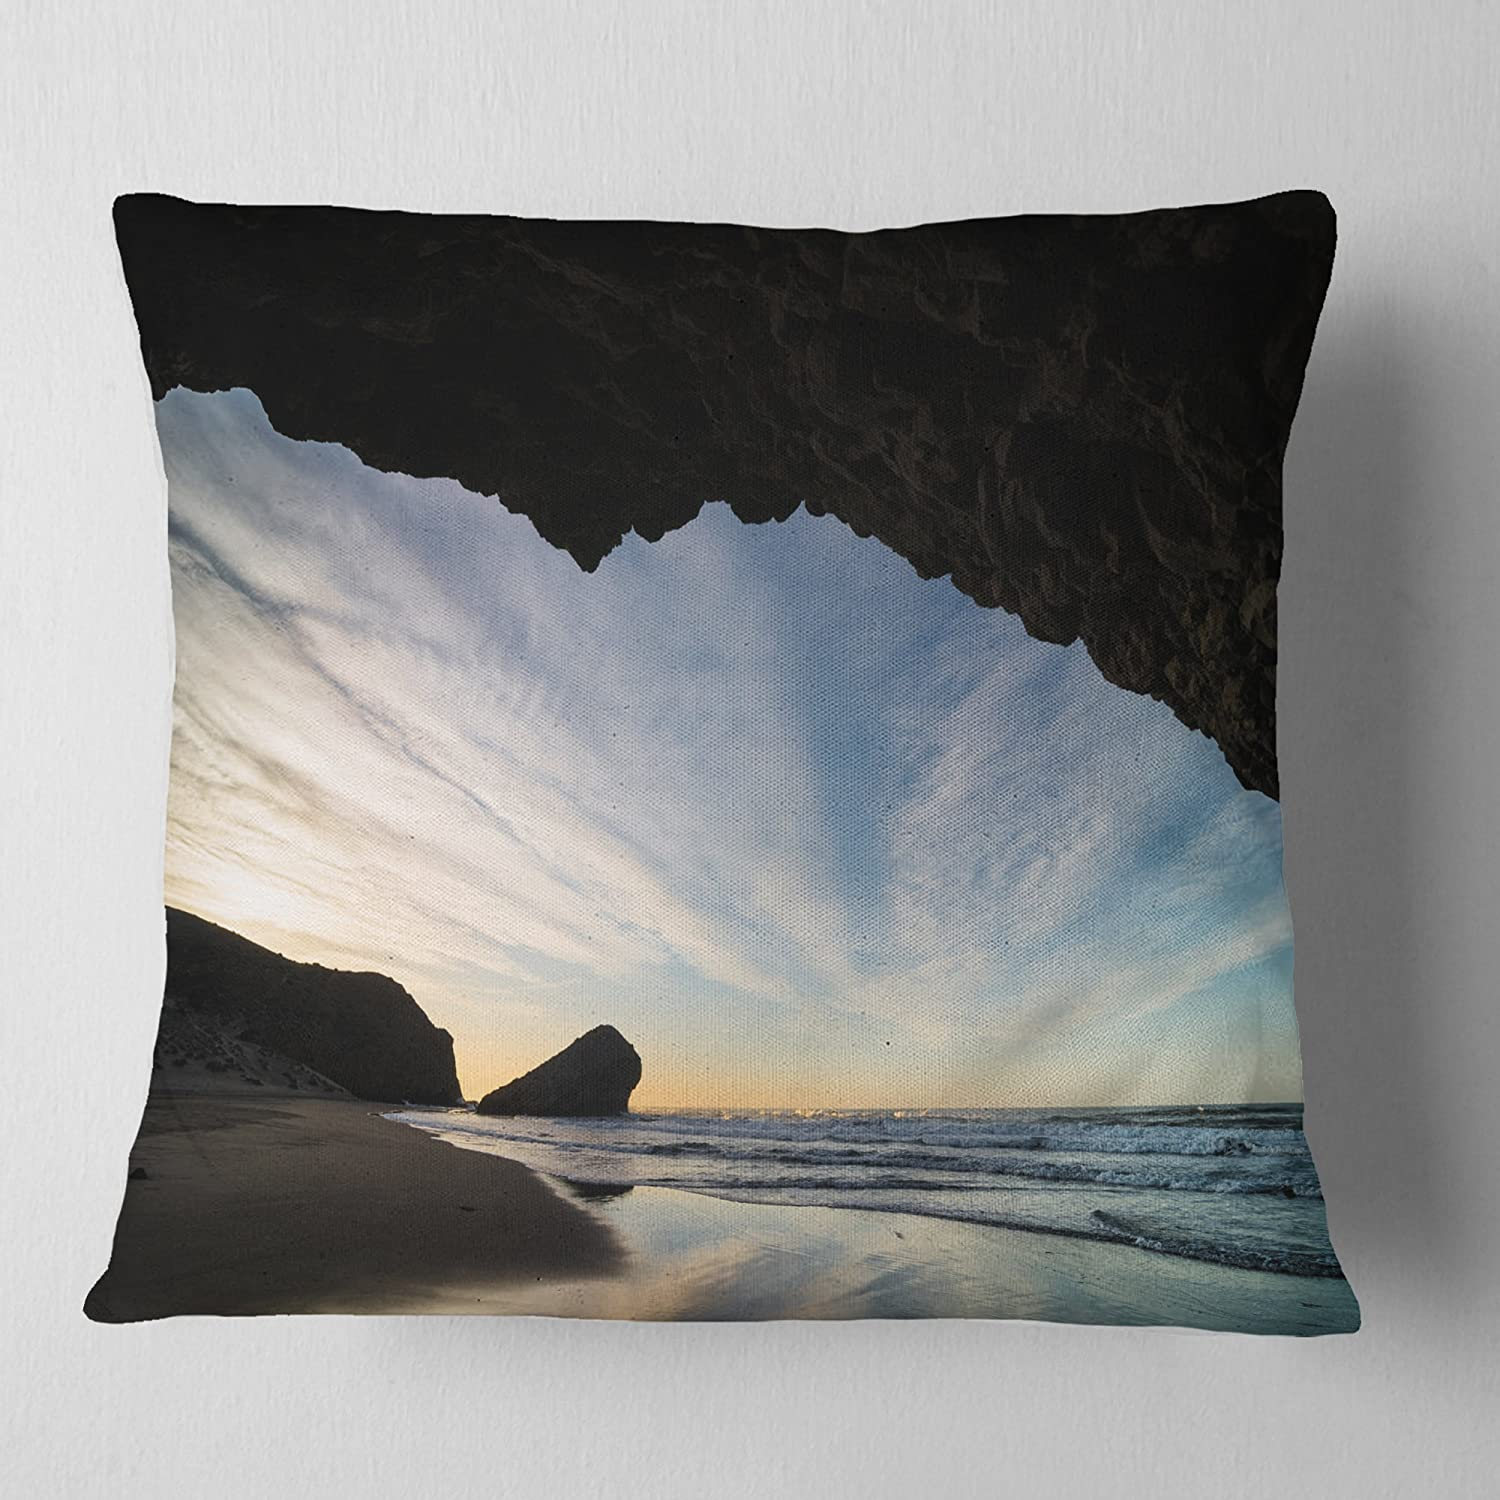 in Designart CU14782-16-16 Monsul Beach During Sunset Seashore Cushion Cover for Living Room Sofa Throw Pillow 16 in x 16 in Insert Printed On Both Side